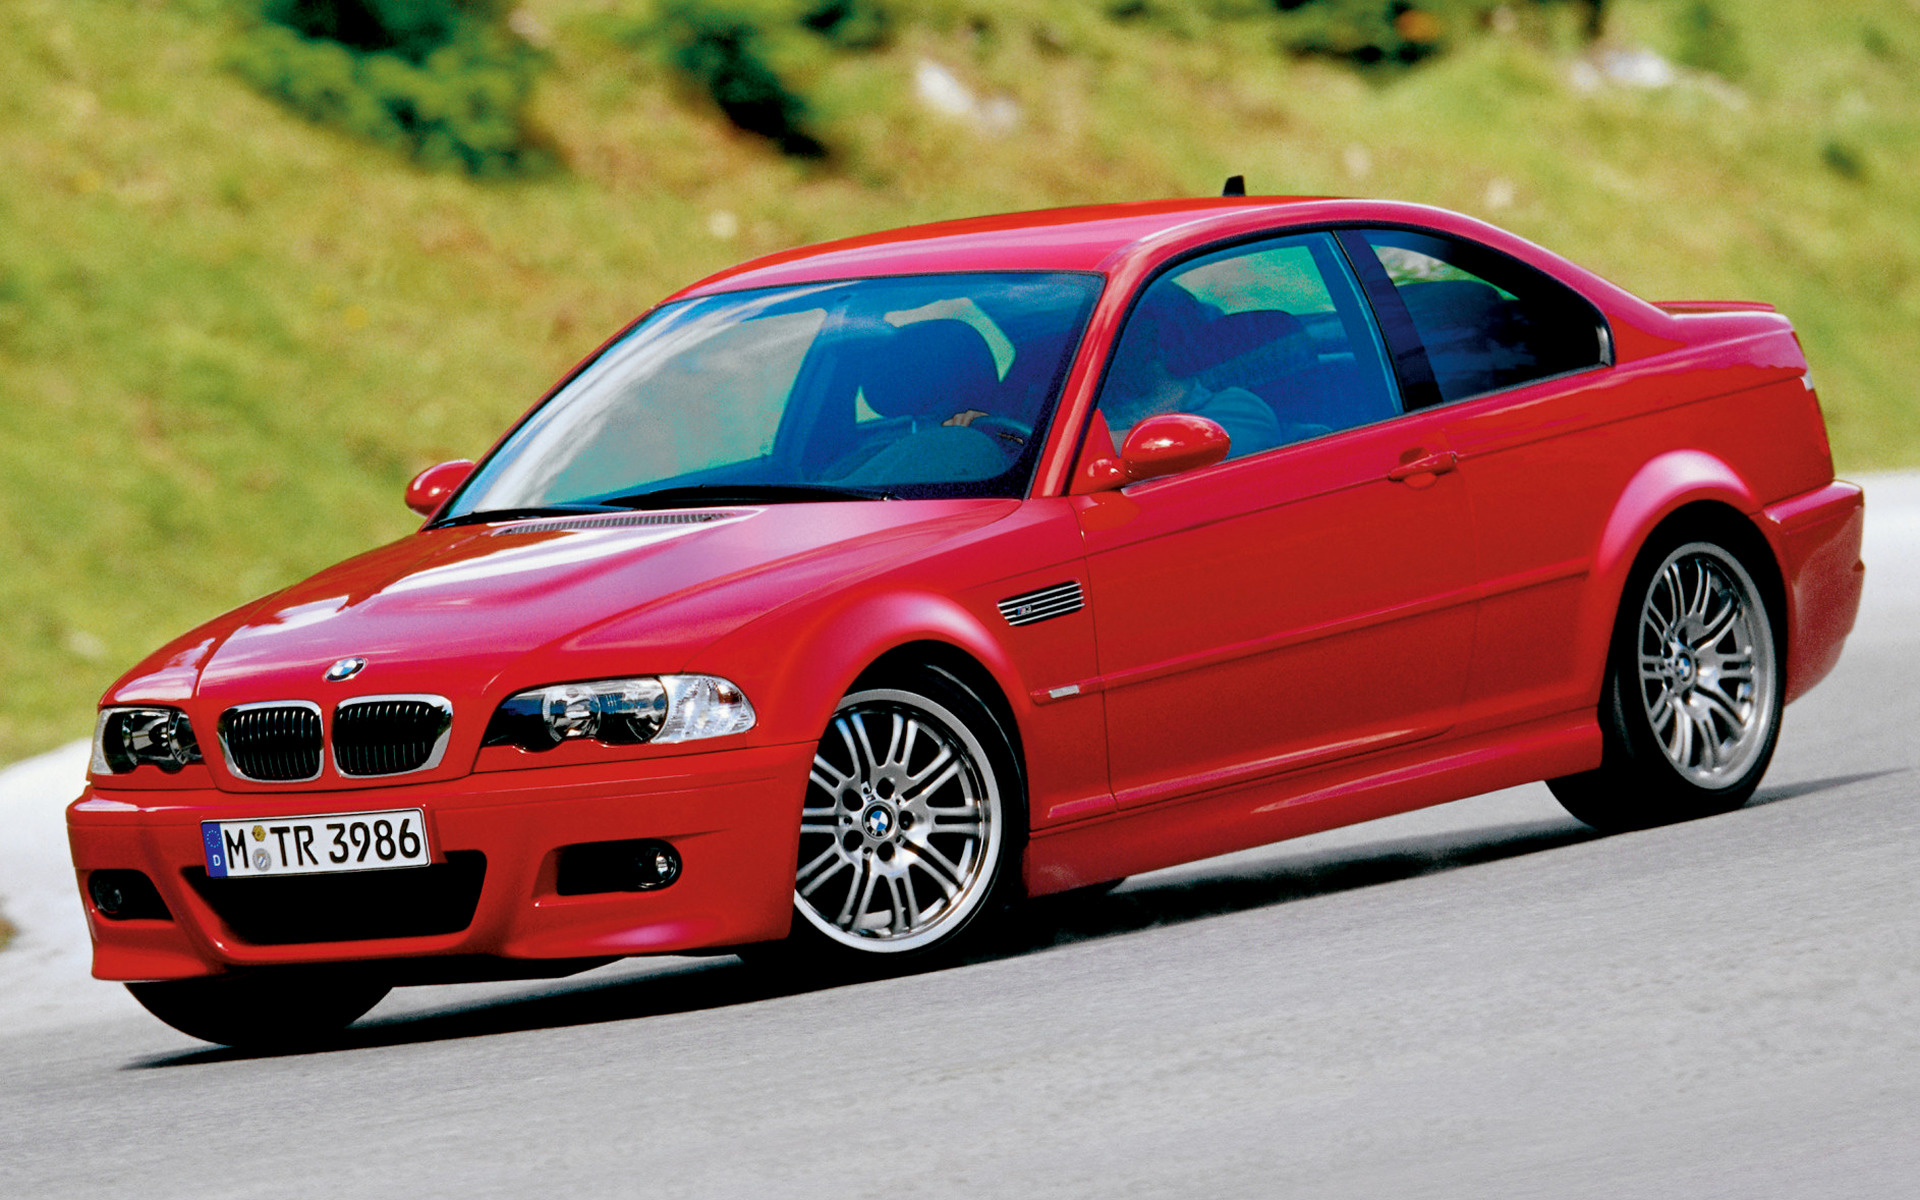 2000 BMW M3 Coupe - Wallpapers and HD Images | Car Pixel